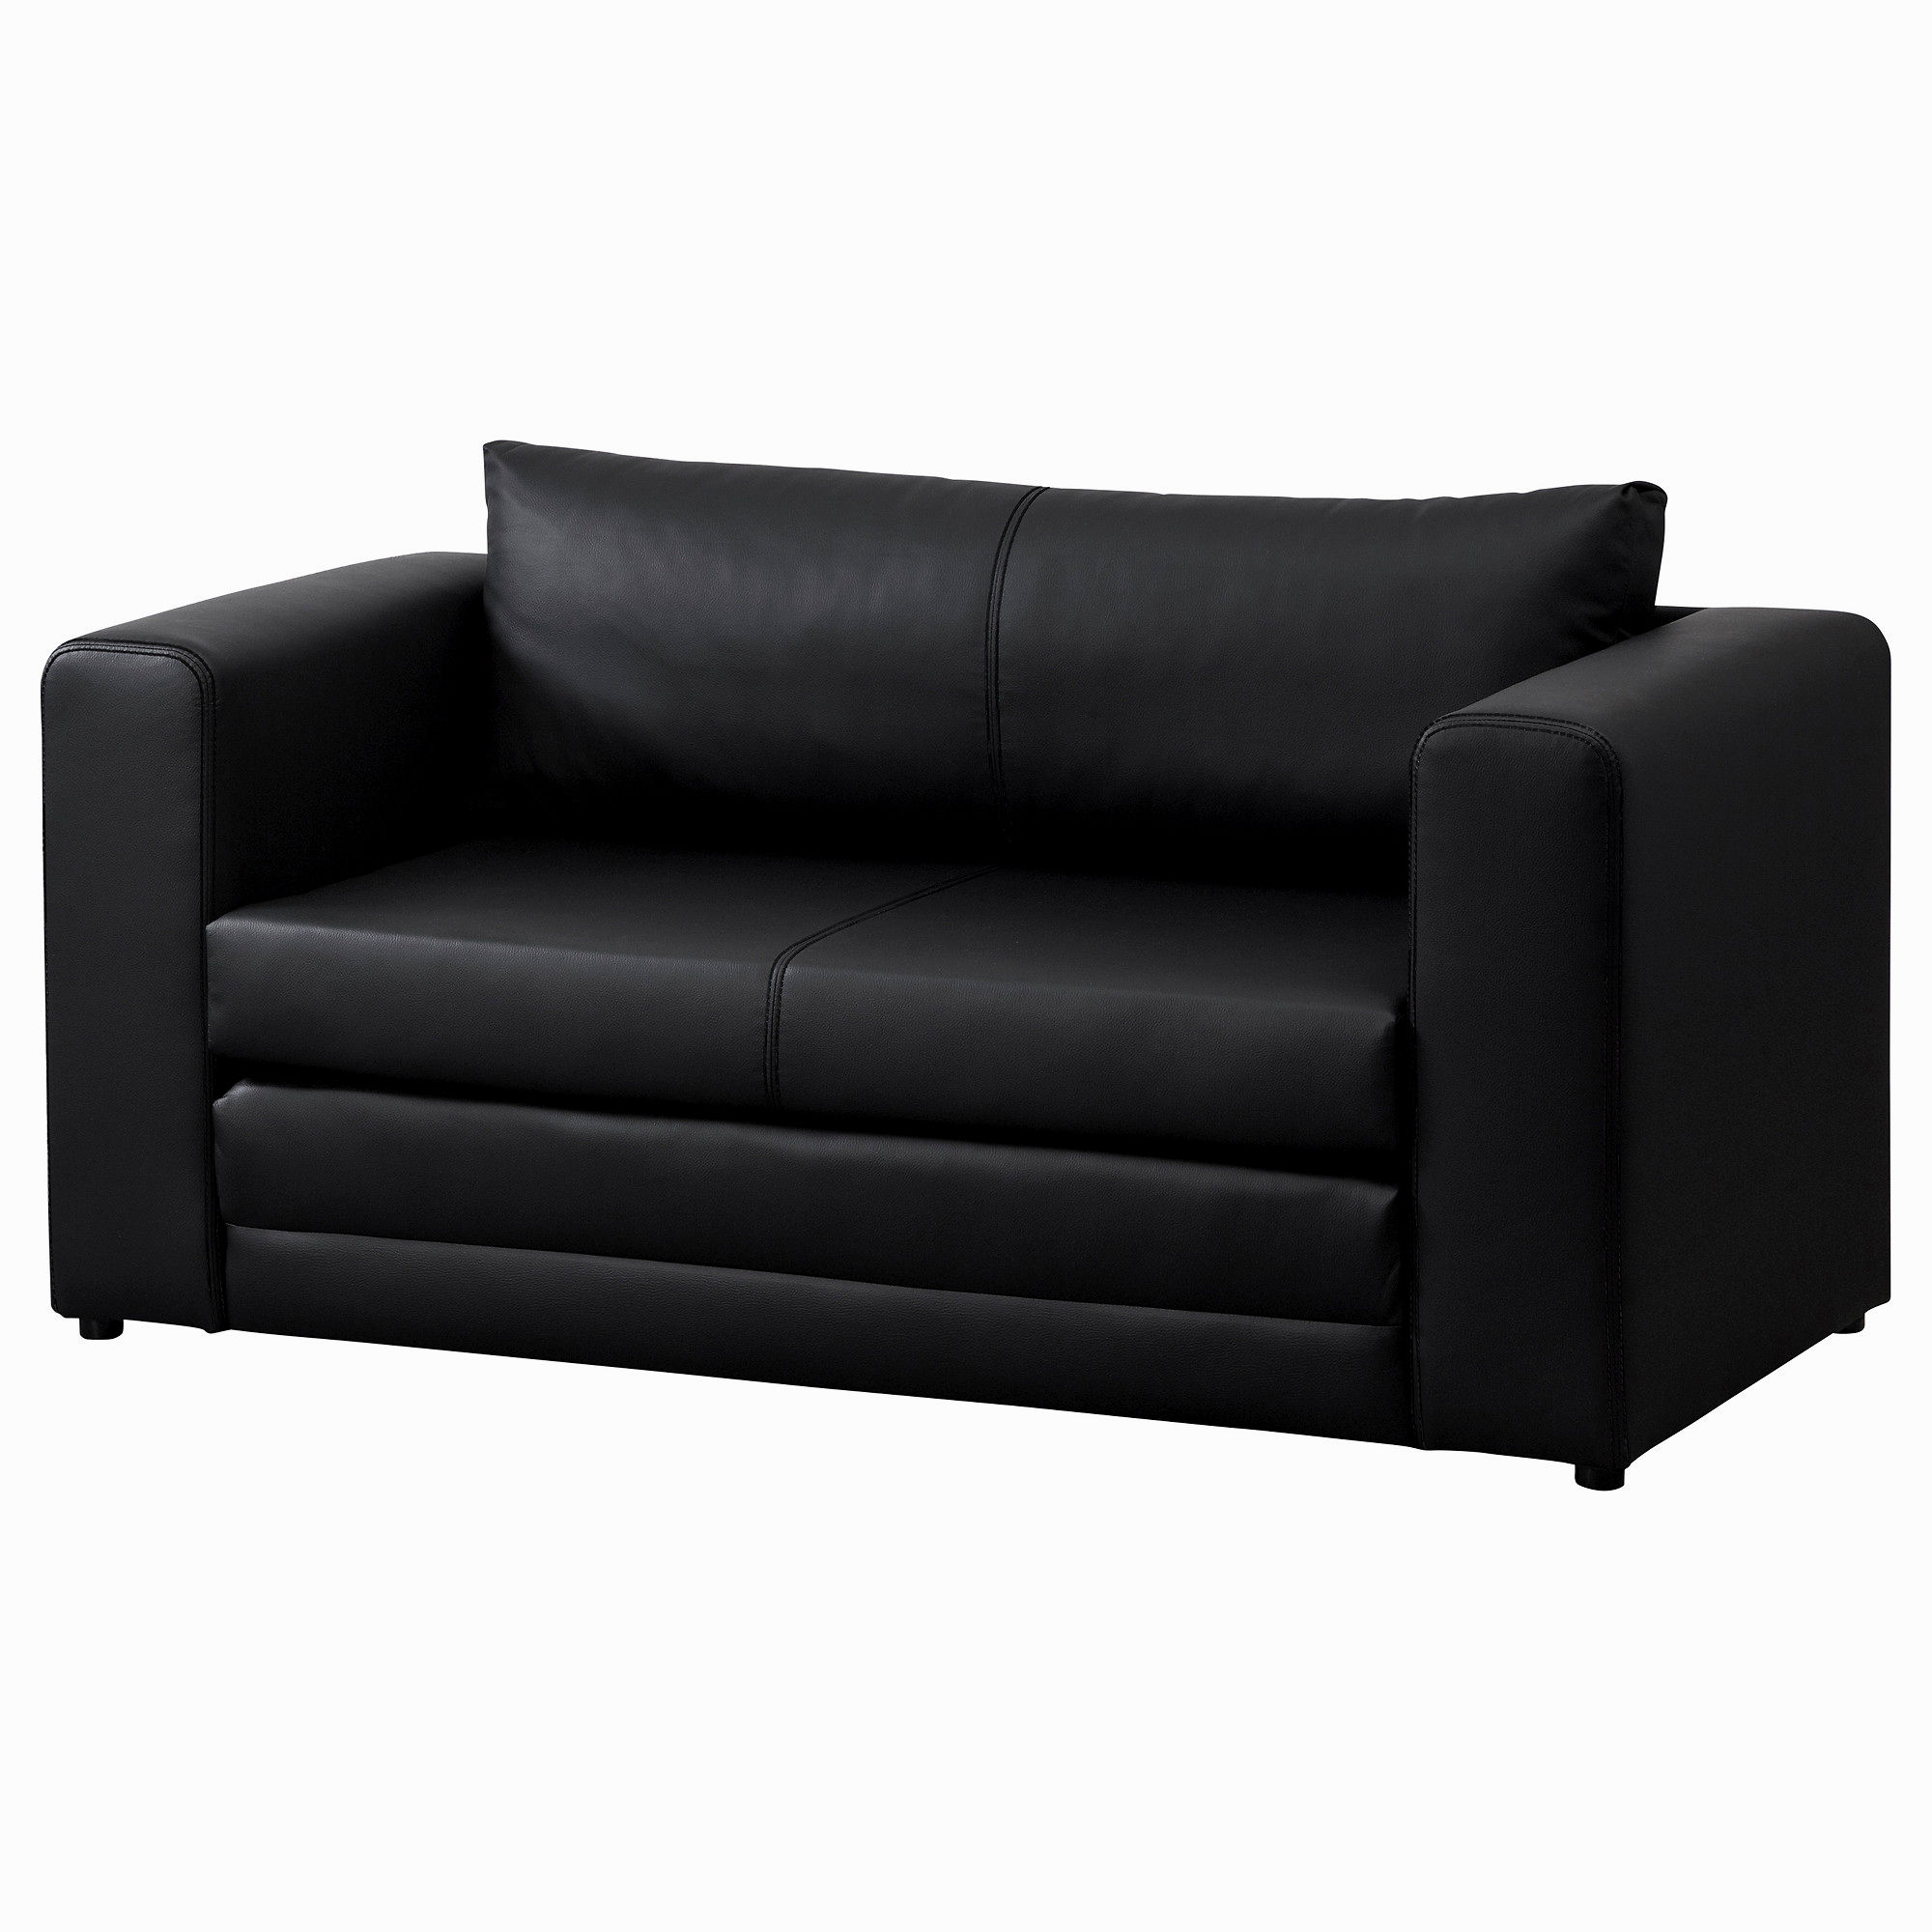 lovely crate and barrel leather sofa photograph-Stunning Crate and Barrel Leather sofa Picture